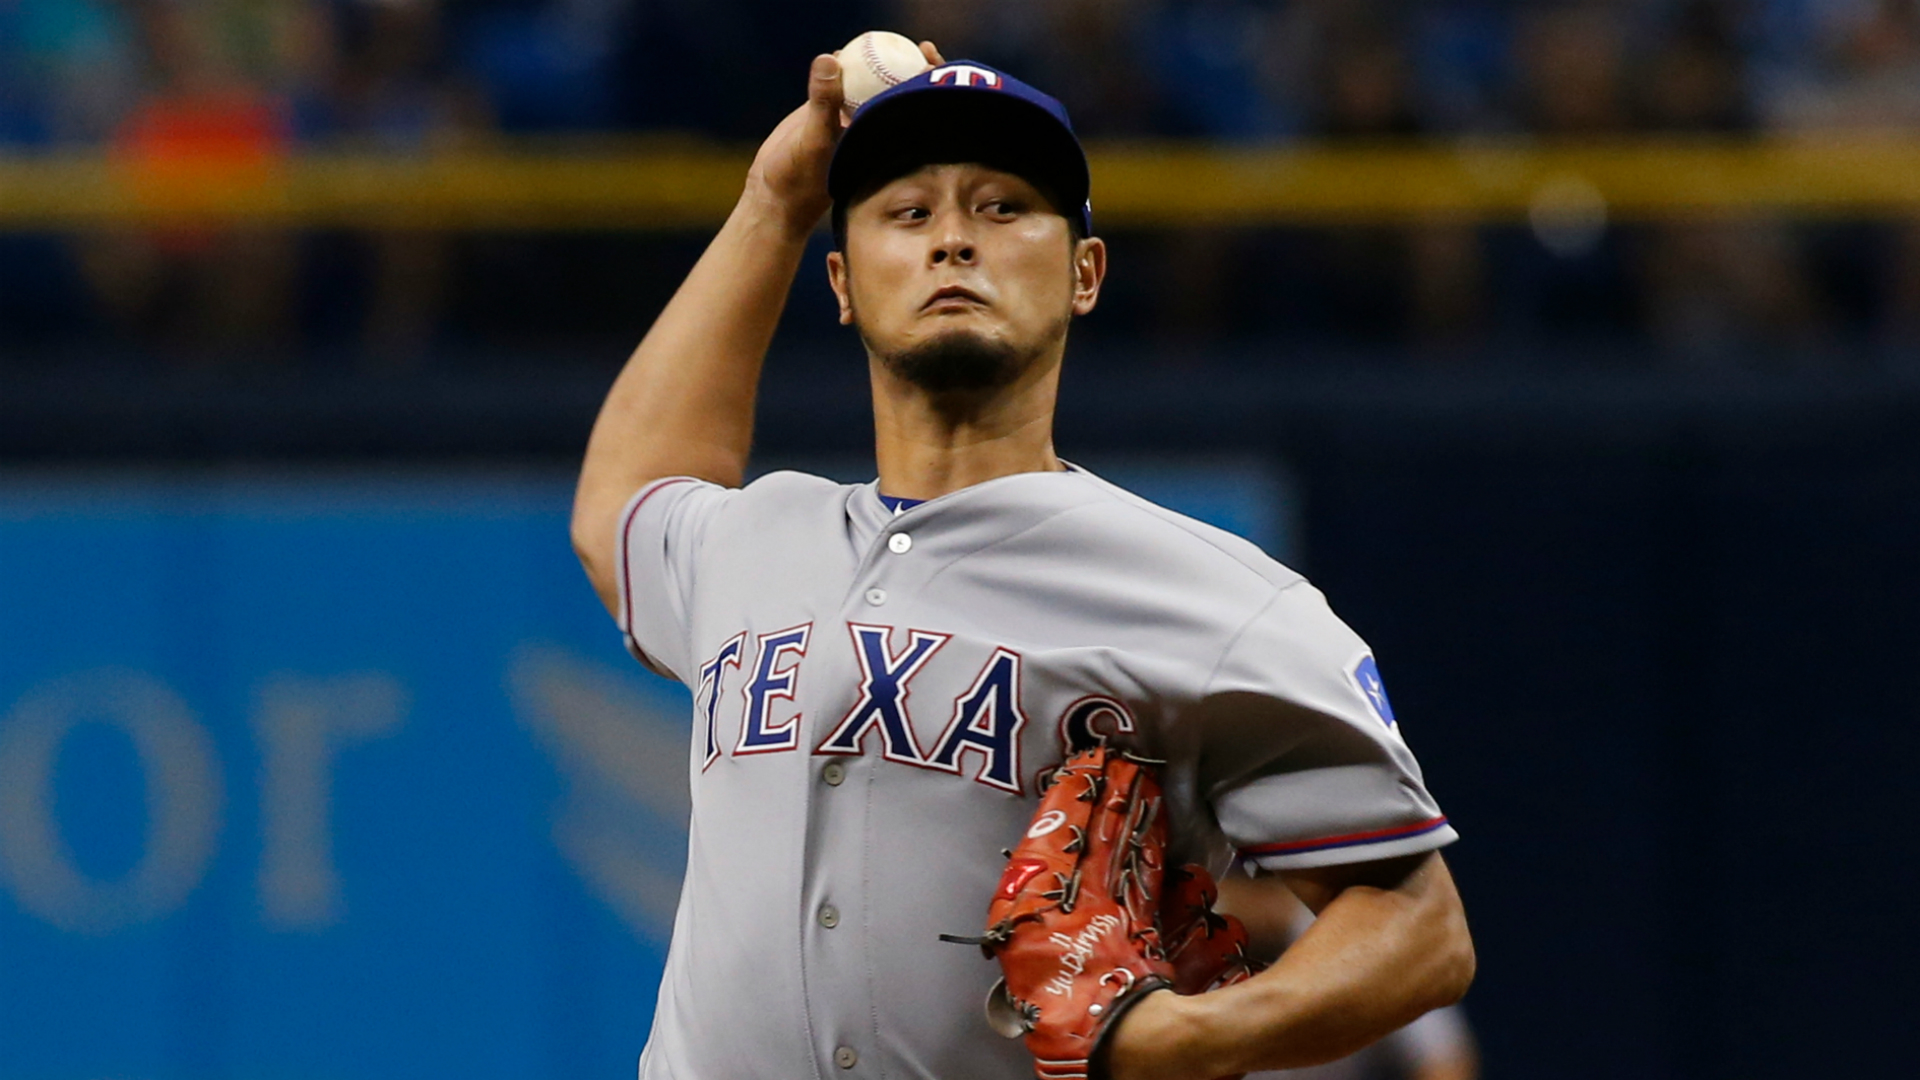 The Rangers are set to trade Yu Darvish